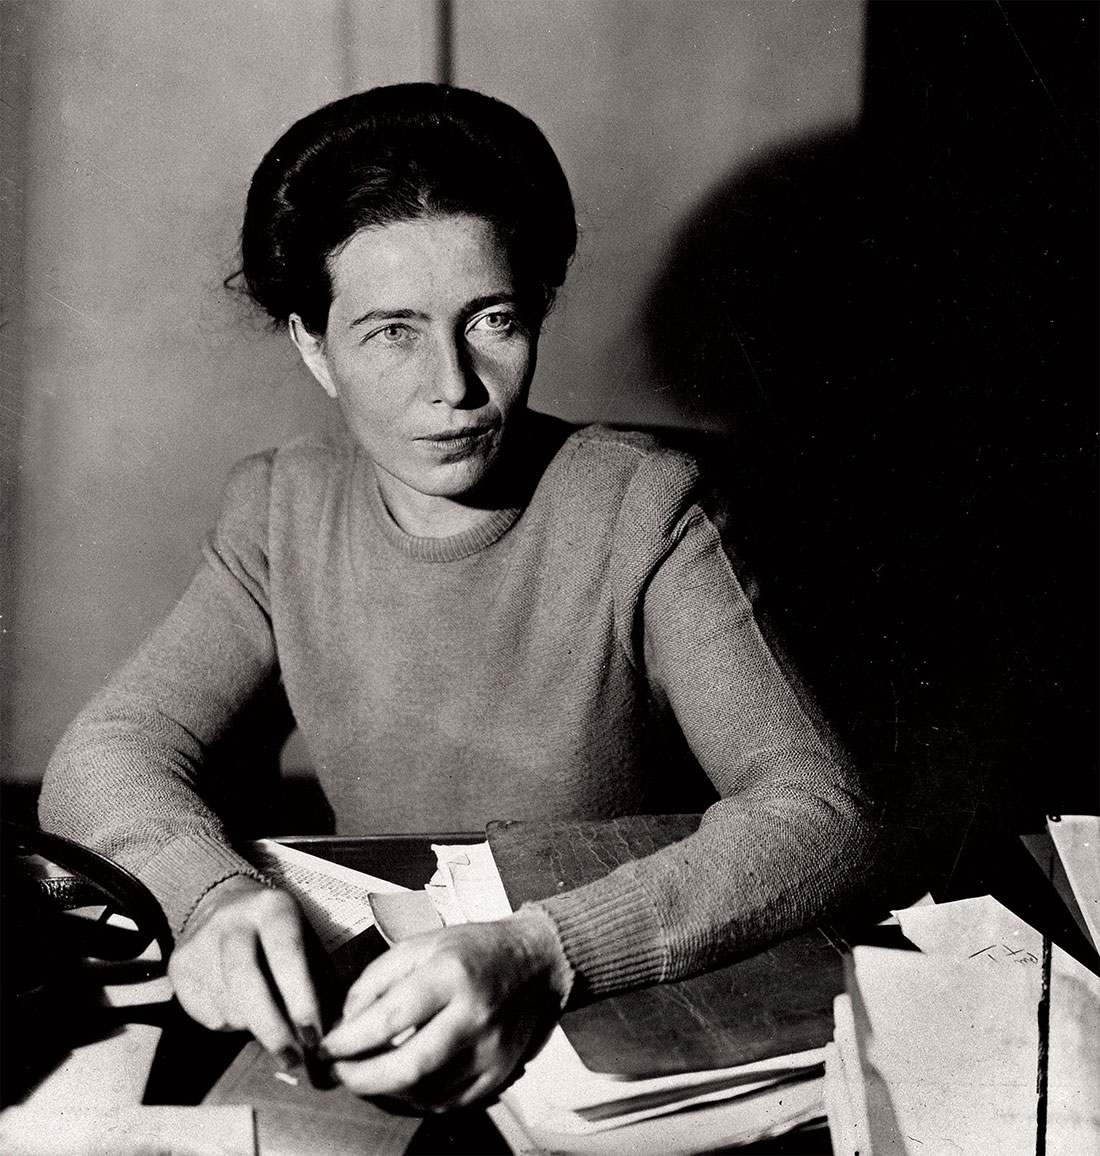 Belittled: Simone de Beauvoir, 1945.